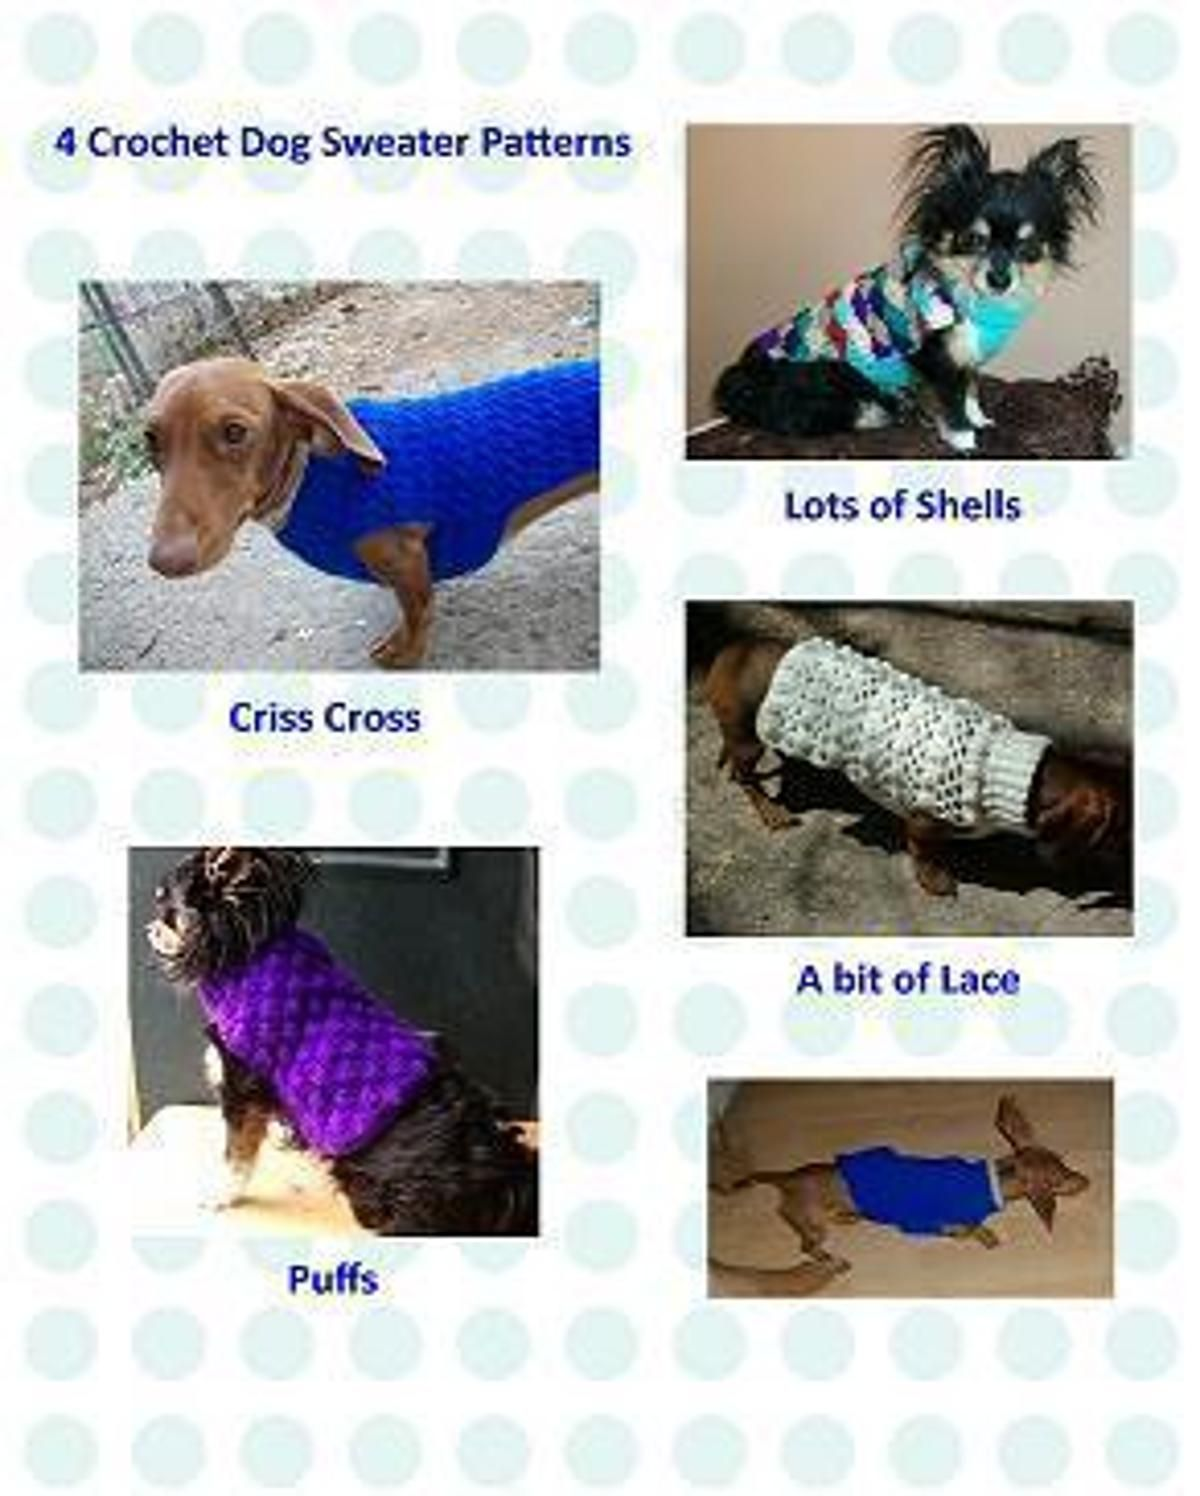 Four Crochet Dog Sweater Patterns